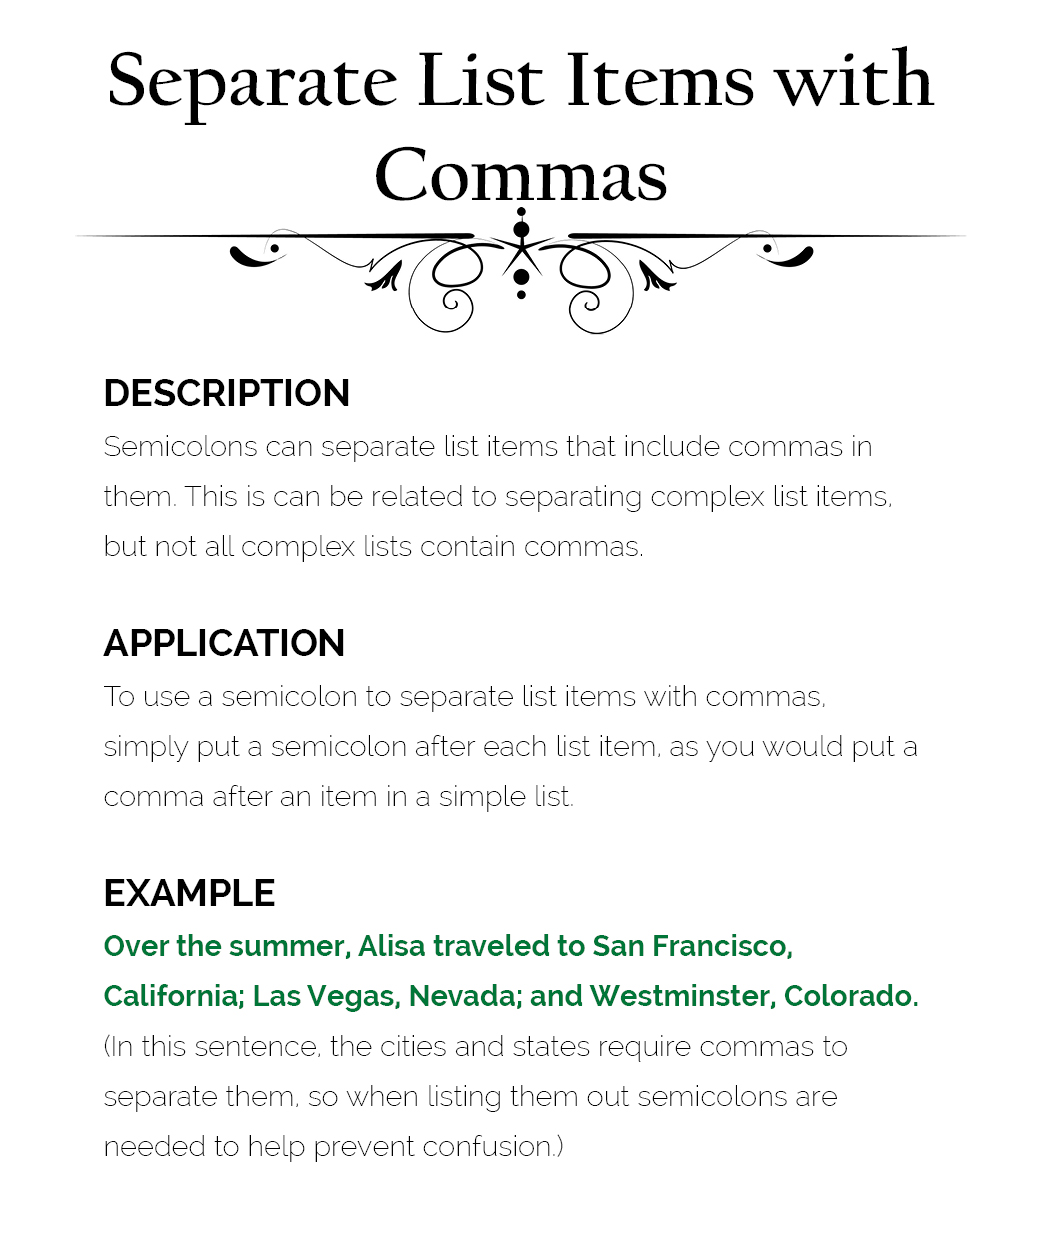 semicolon-use-3-separates-list-items-with-commas